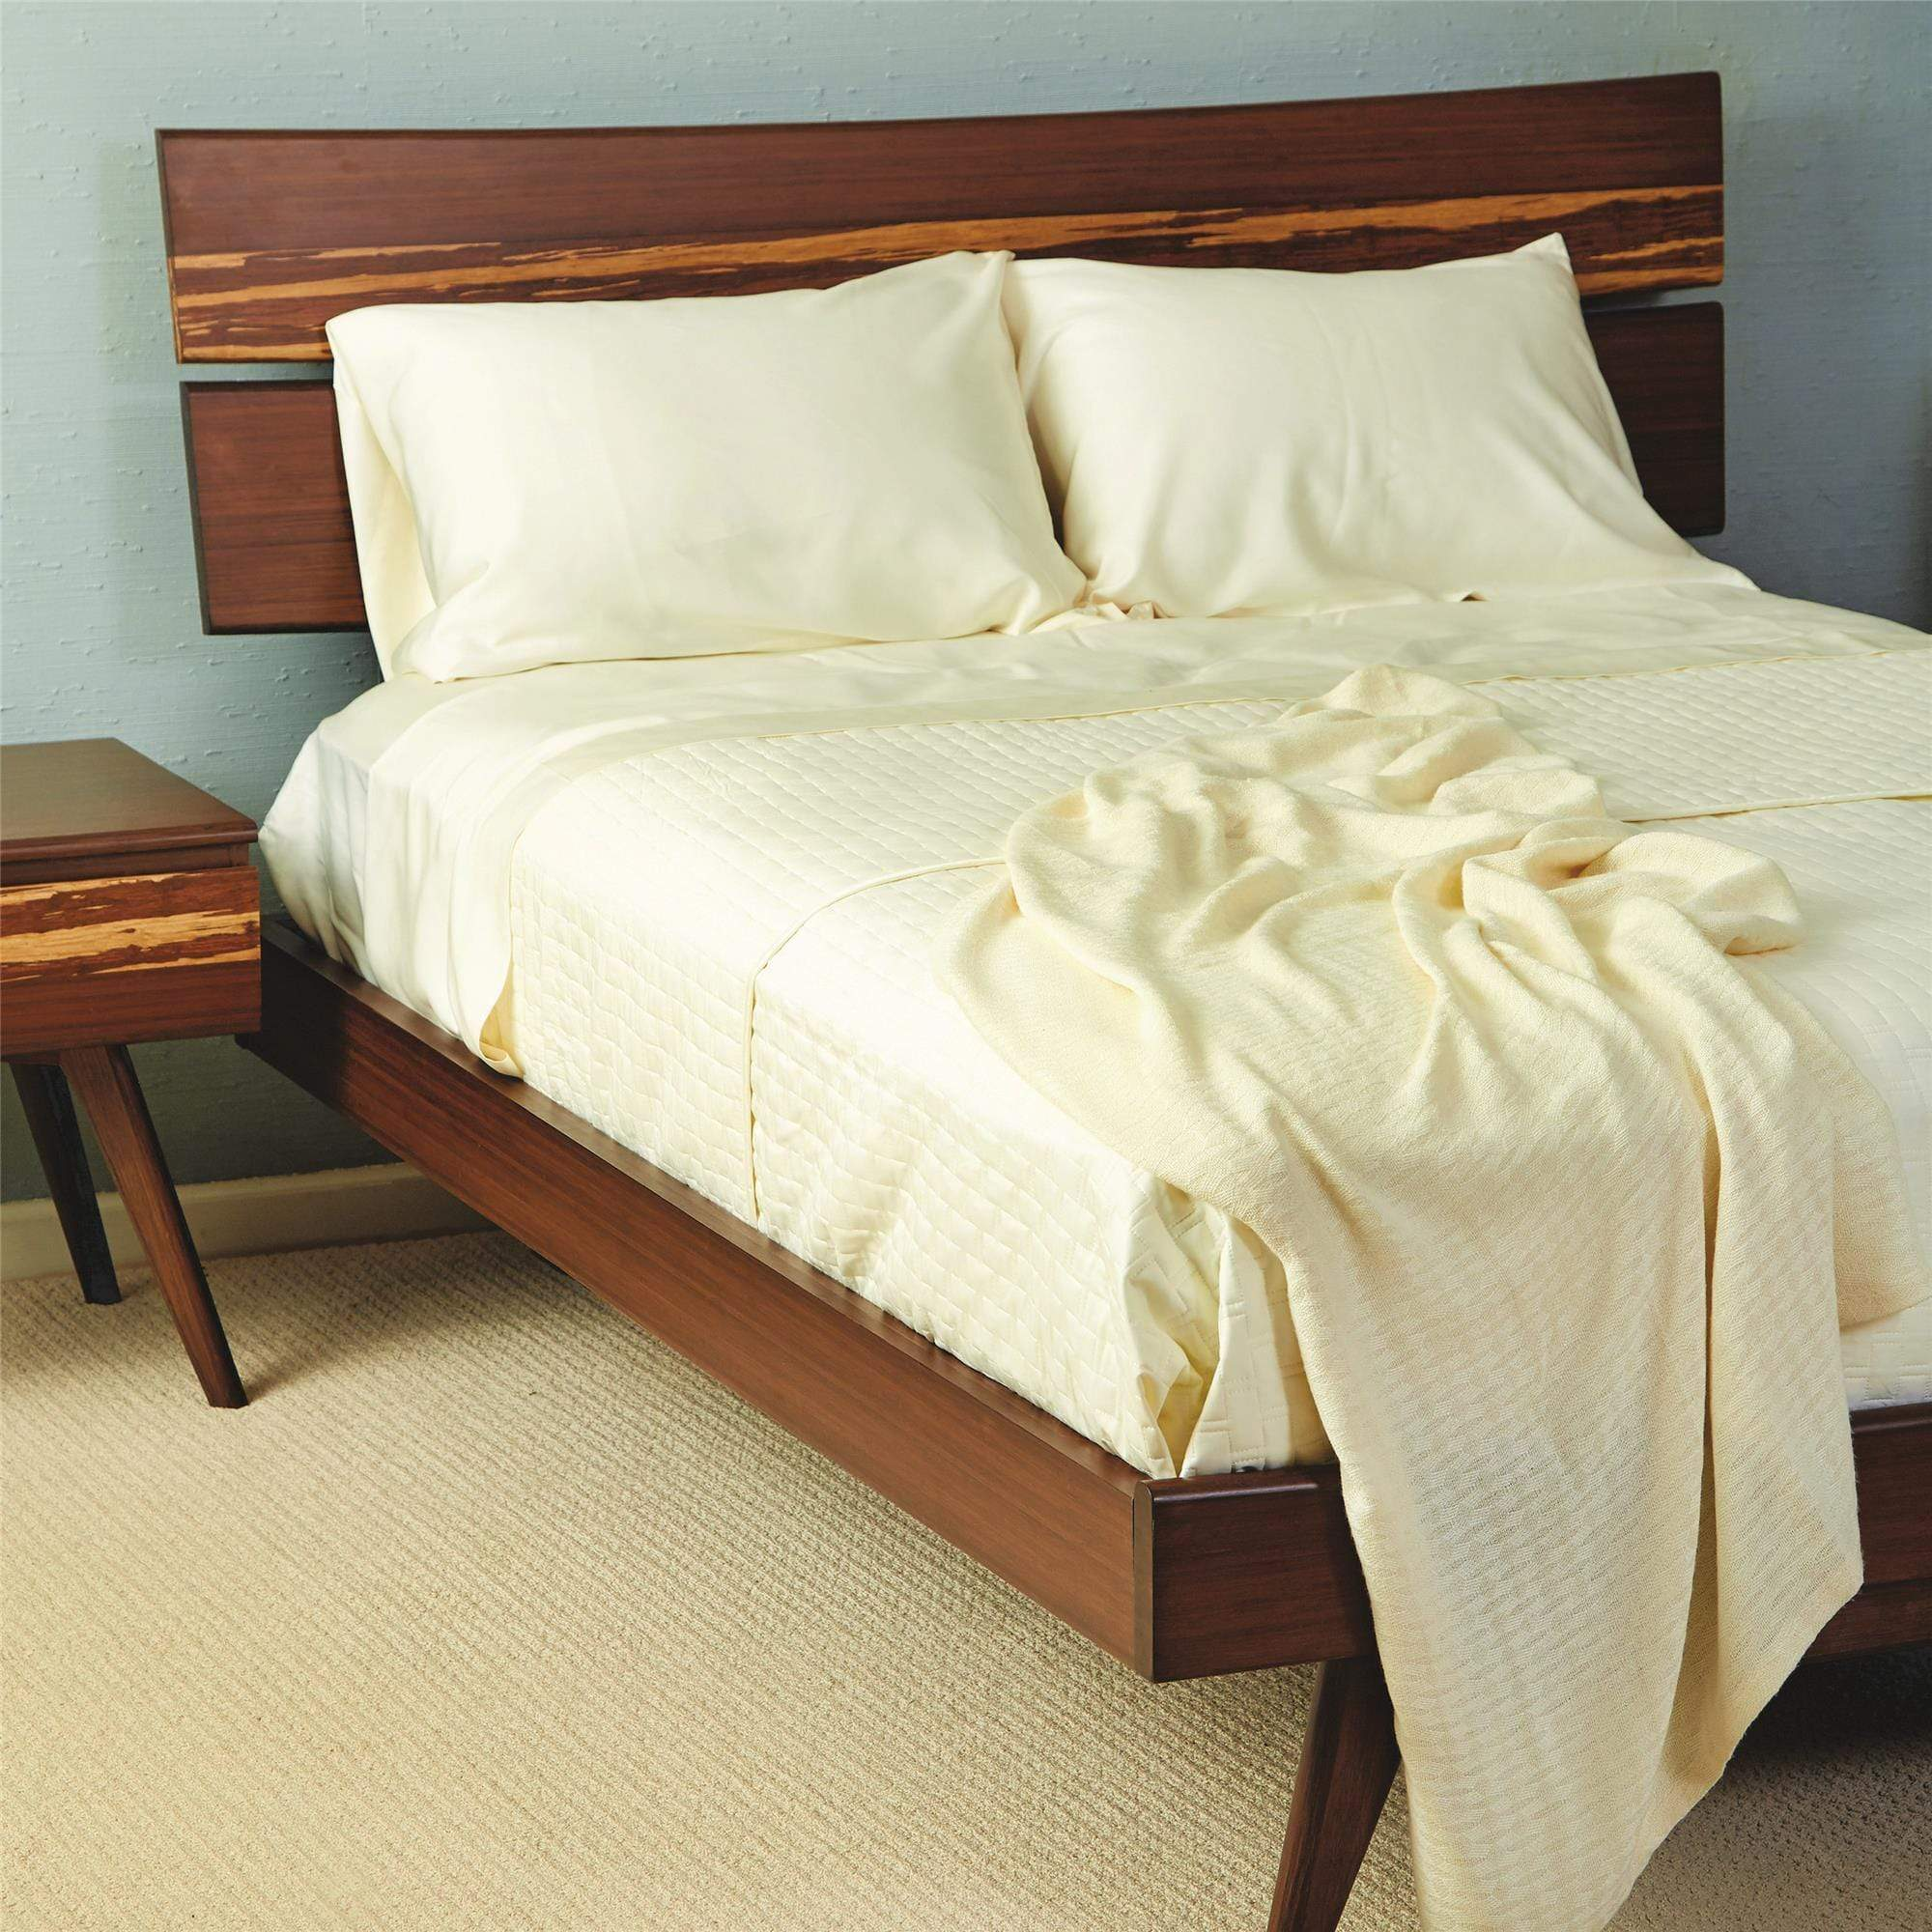 Bamboo Maternity Bed Sheets Pre & Post Pregnancy Undyed Ivory